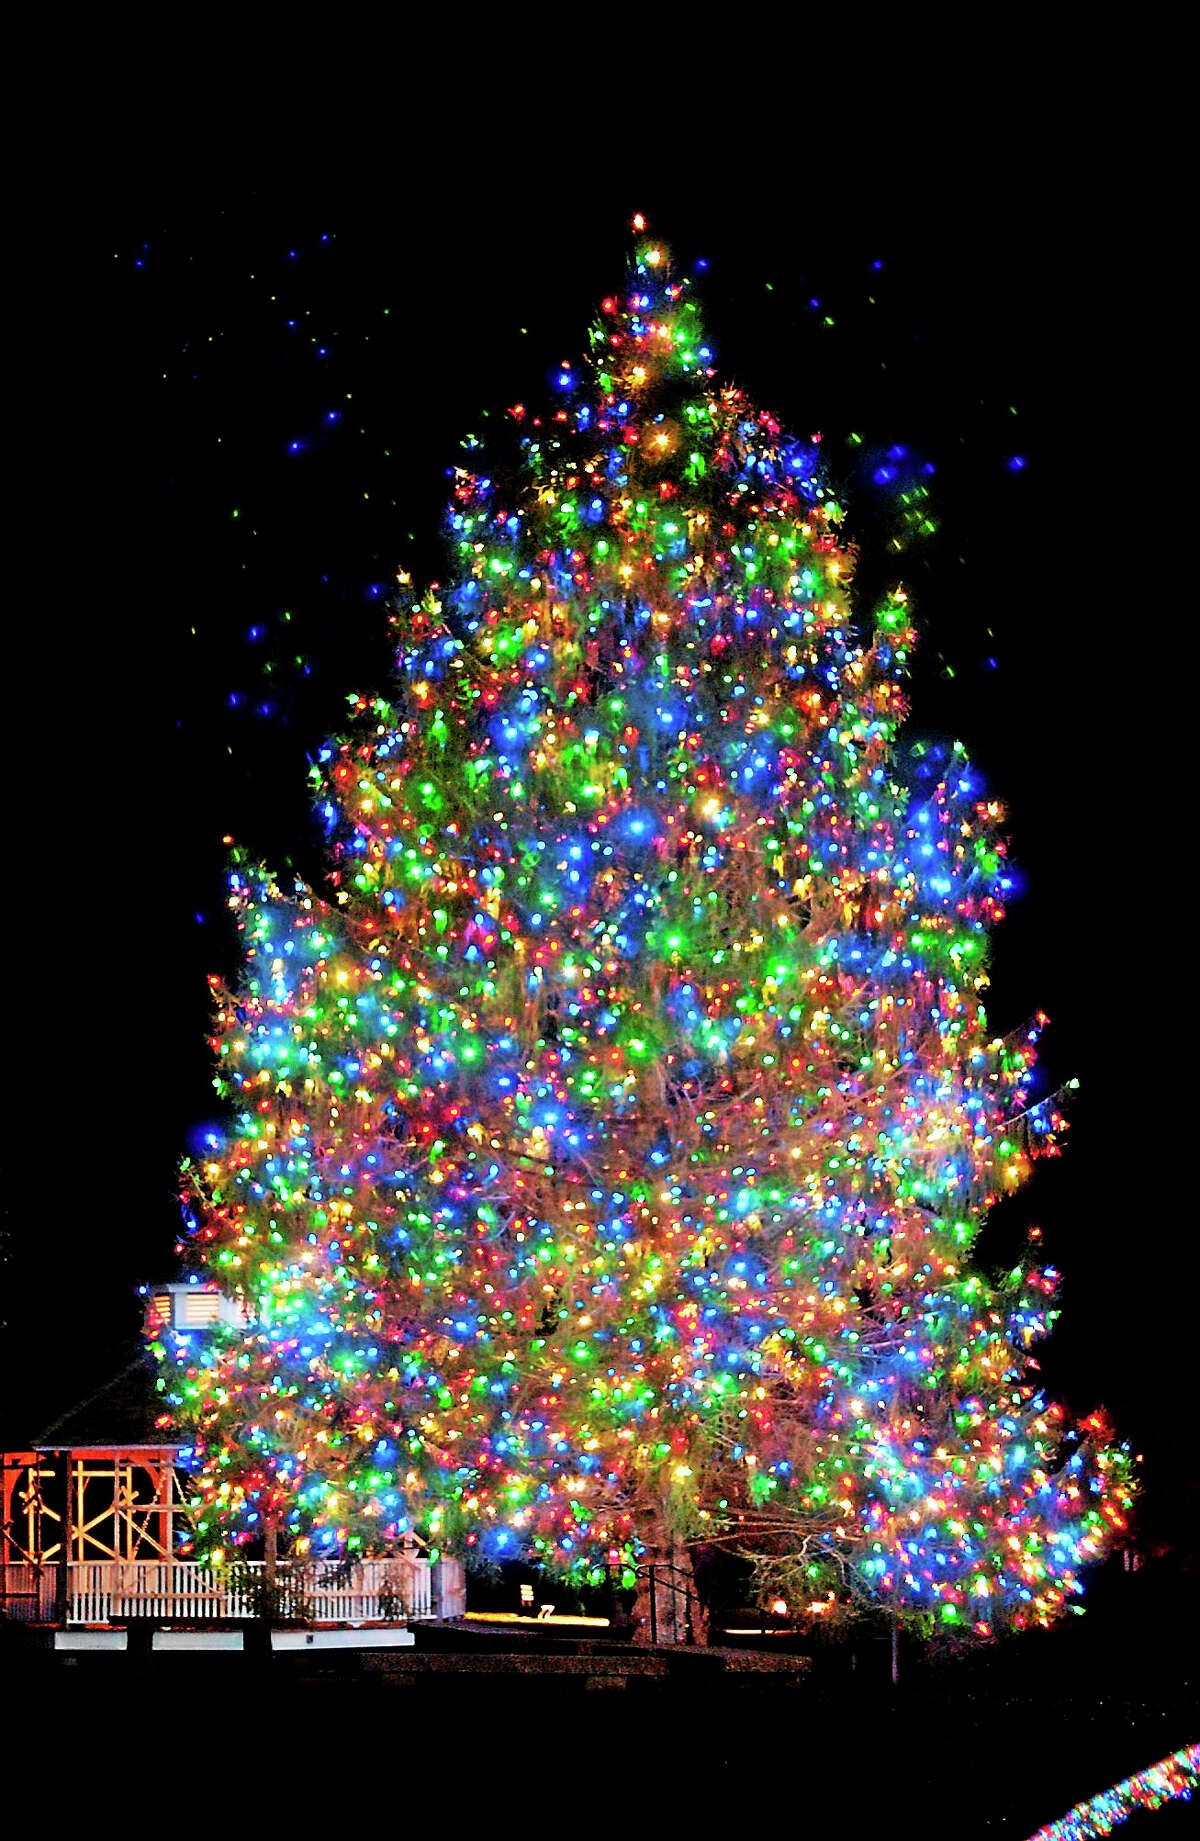 Contributed photoA highlight of the Illuminations celebration in Ivoryton is the lighting of the Christmas tree, which will take place Sunday, Dec. 6.